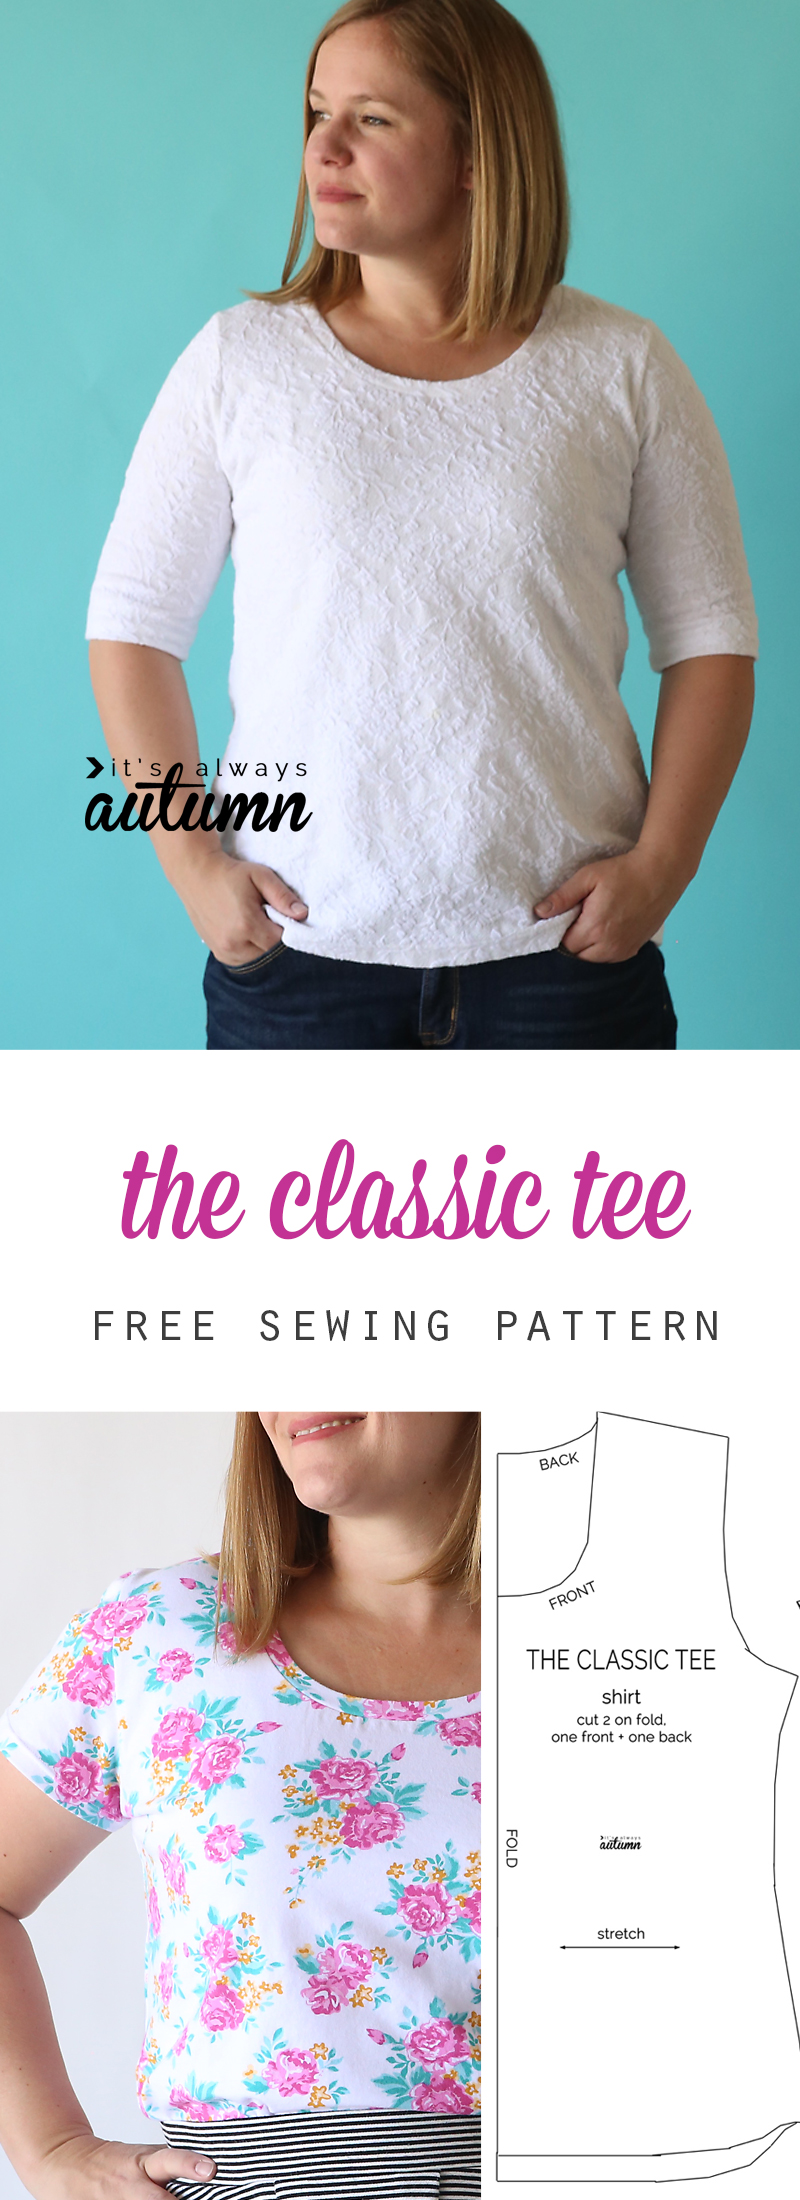 10f8fd0737a Free Sewing Patterns: 20 spring and summer tops and t-shirt ...